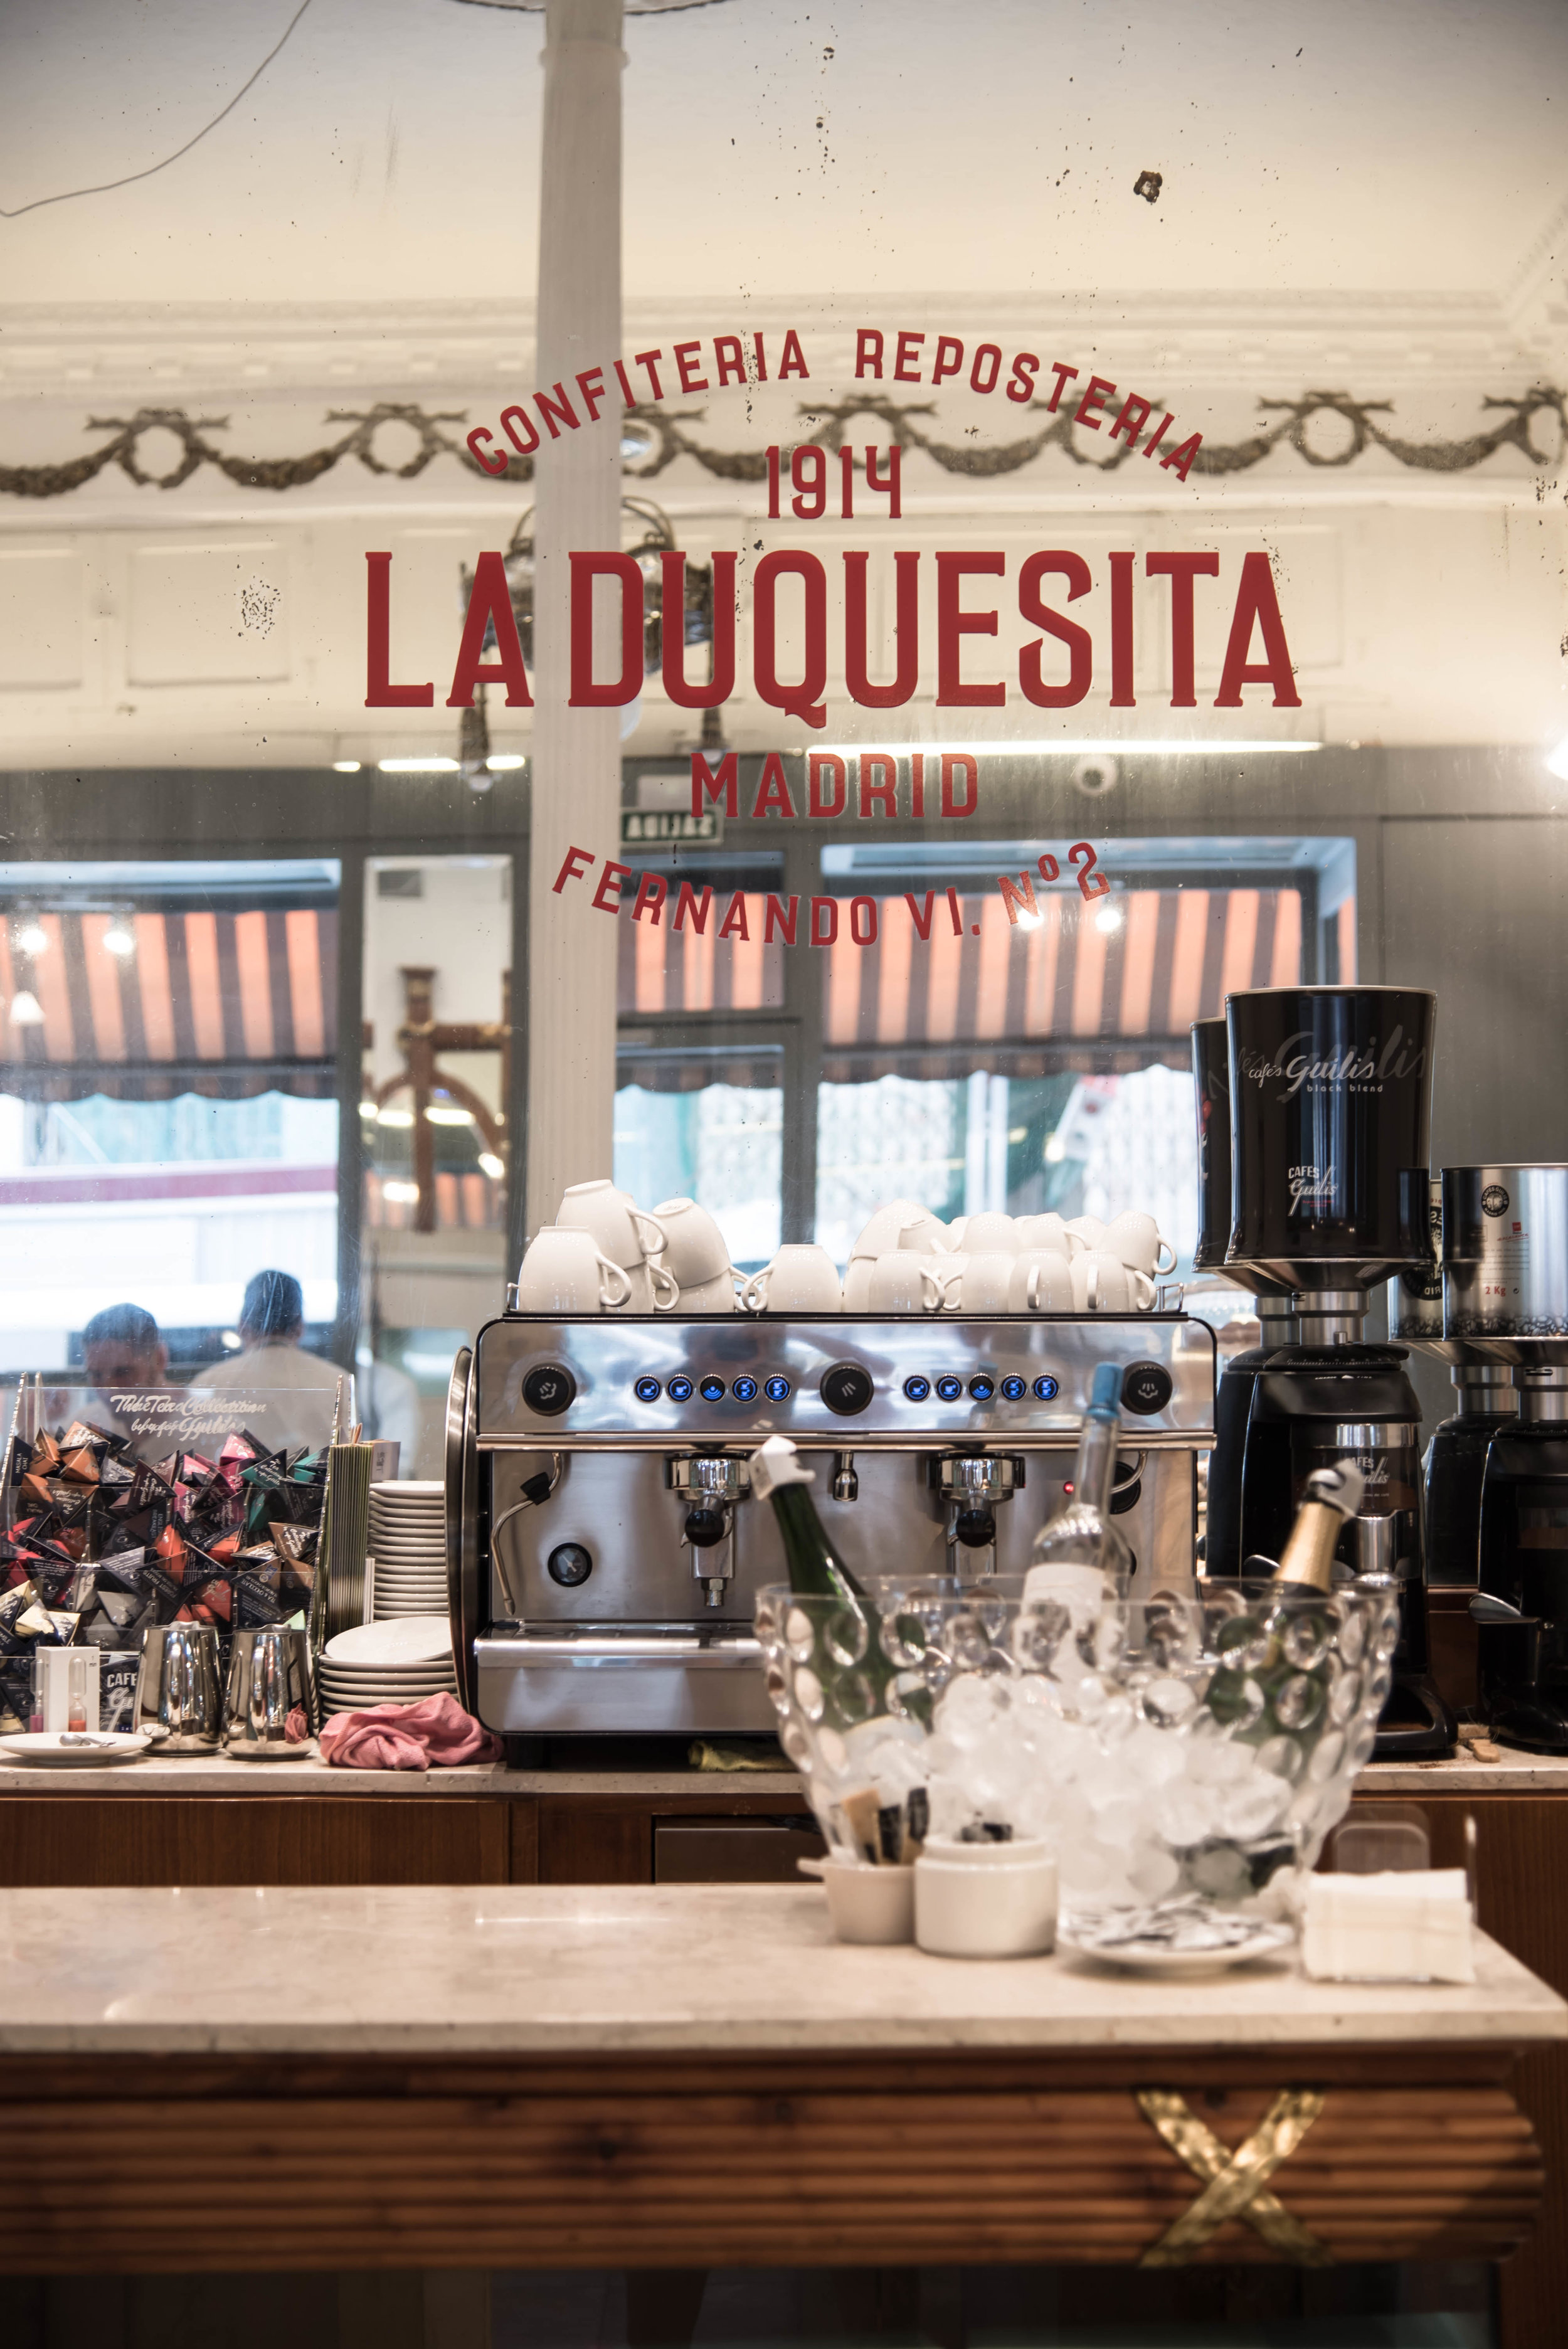 ROSE &IVY Journal Where to Pastries & Drink Coffee Madrid La Duquesita